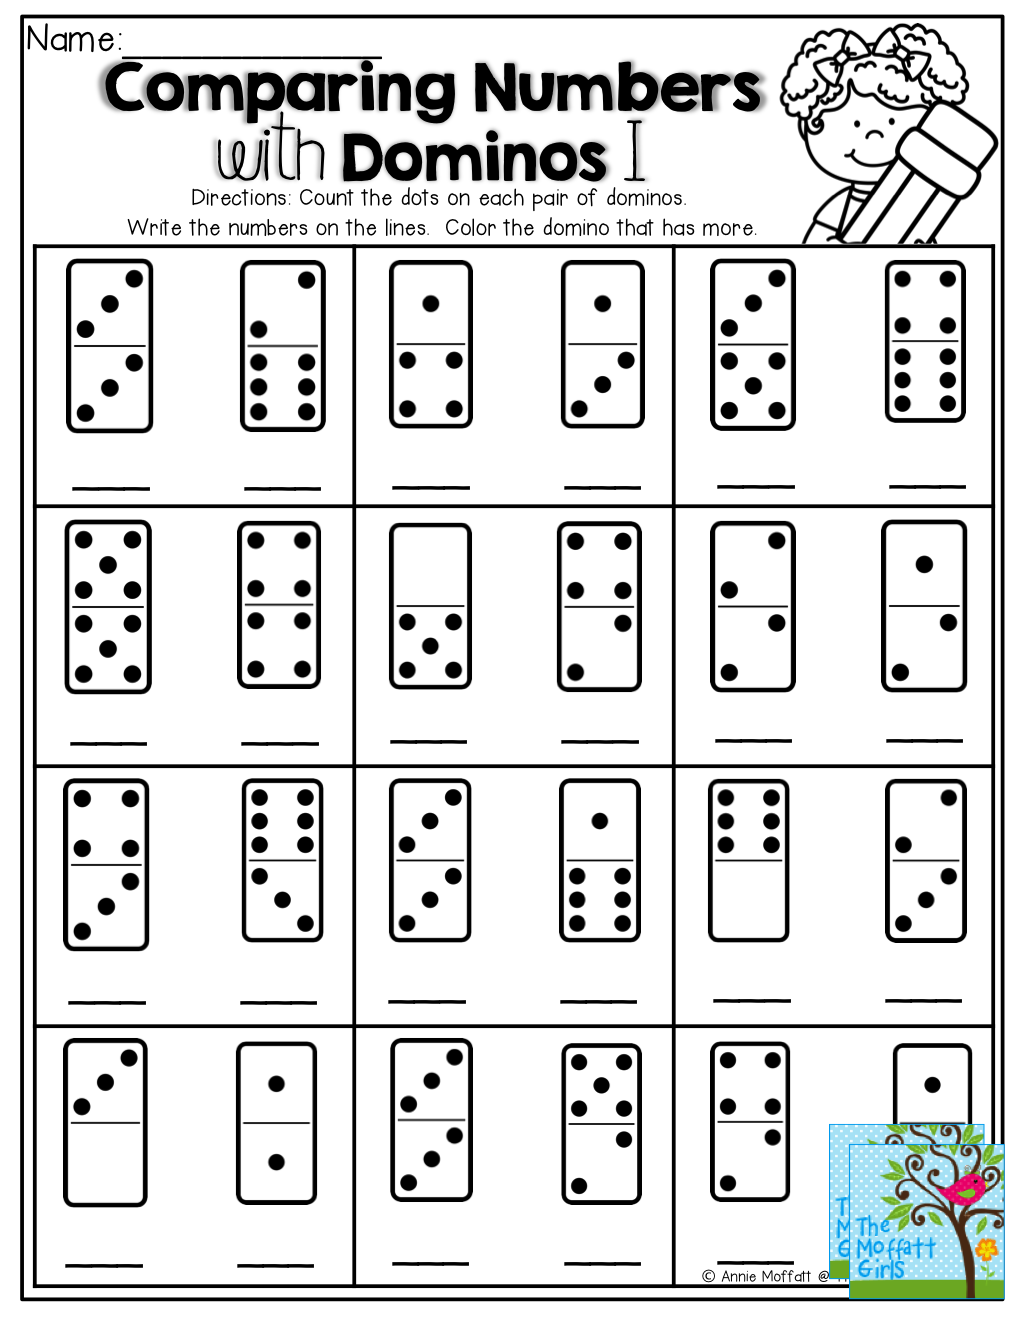 hight resolution of Comparing Numbers! Count the dots on the domino